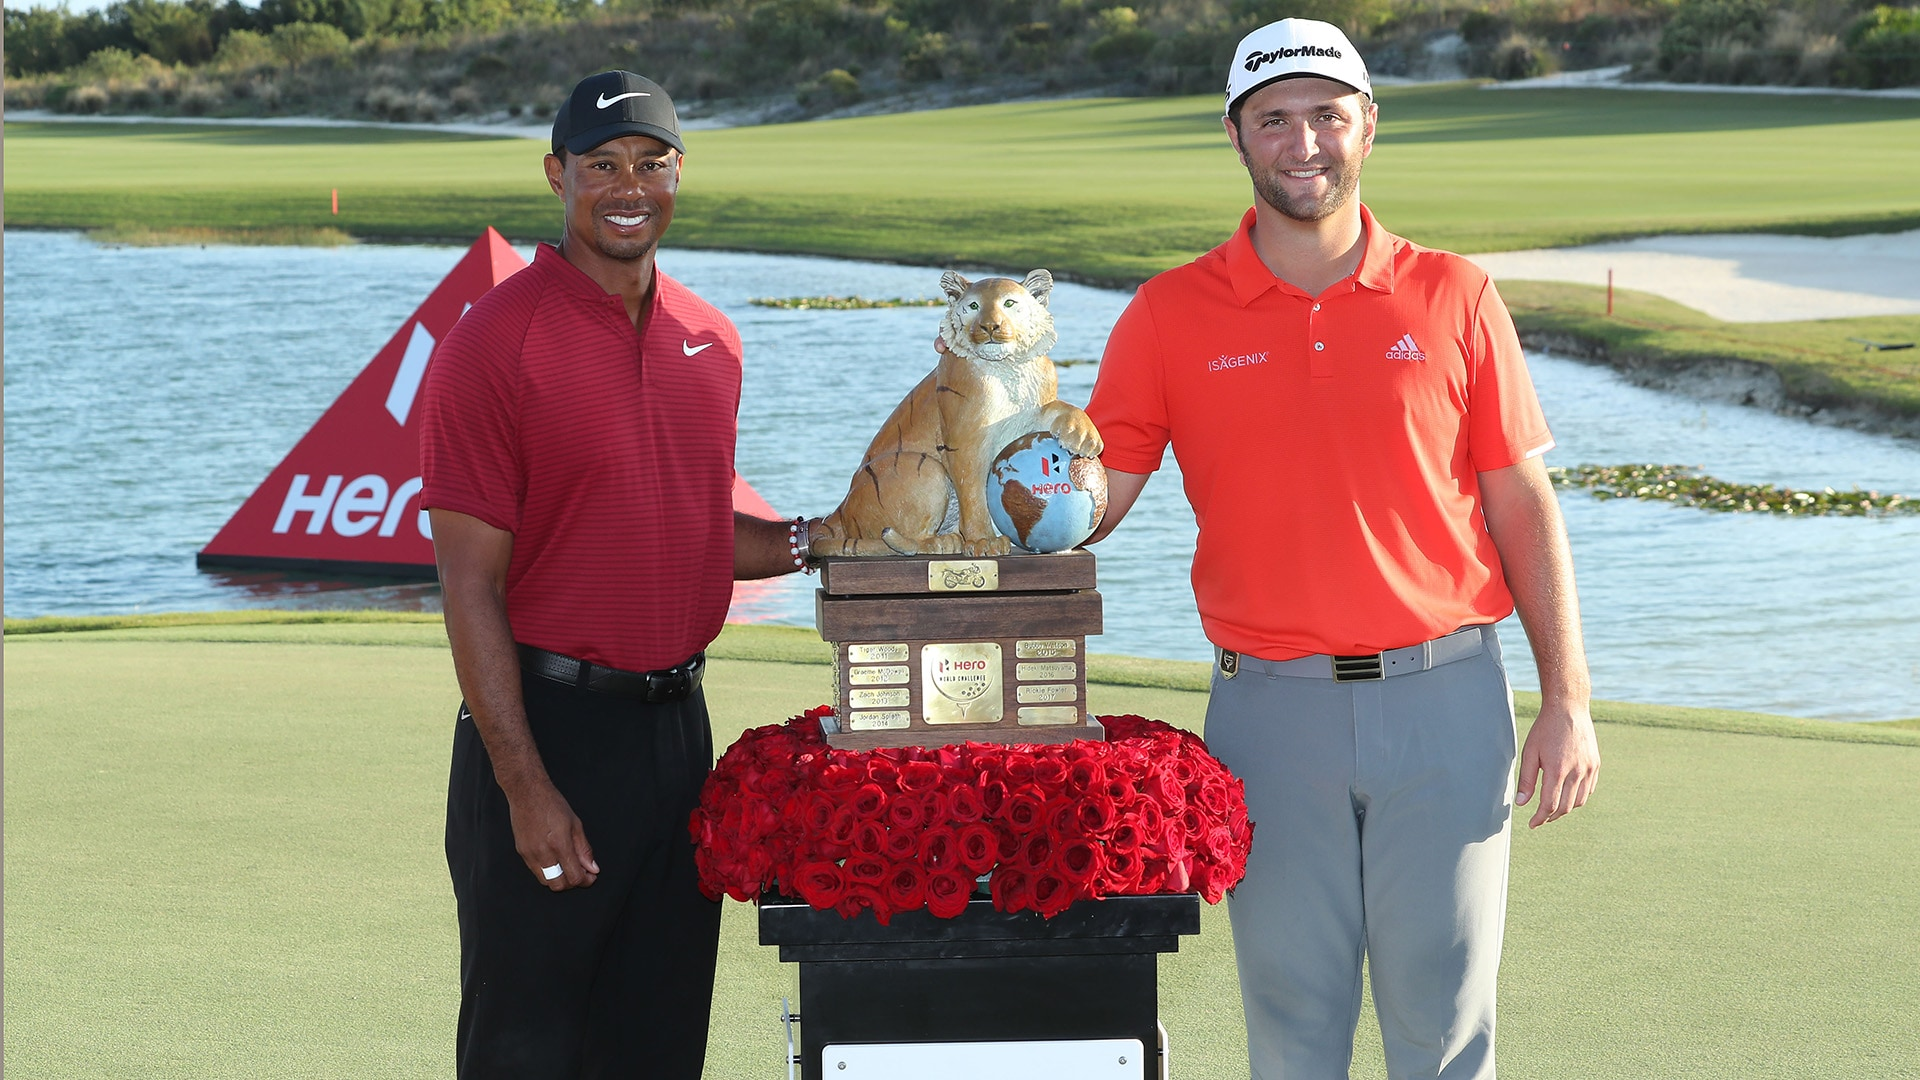 Tiger Woods and Jon Rahm at the 2018 Hero World Challenge